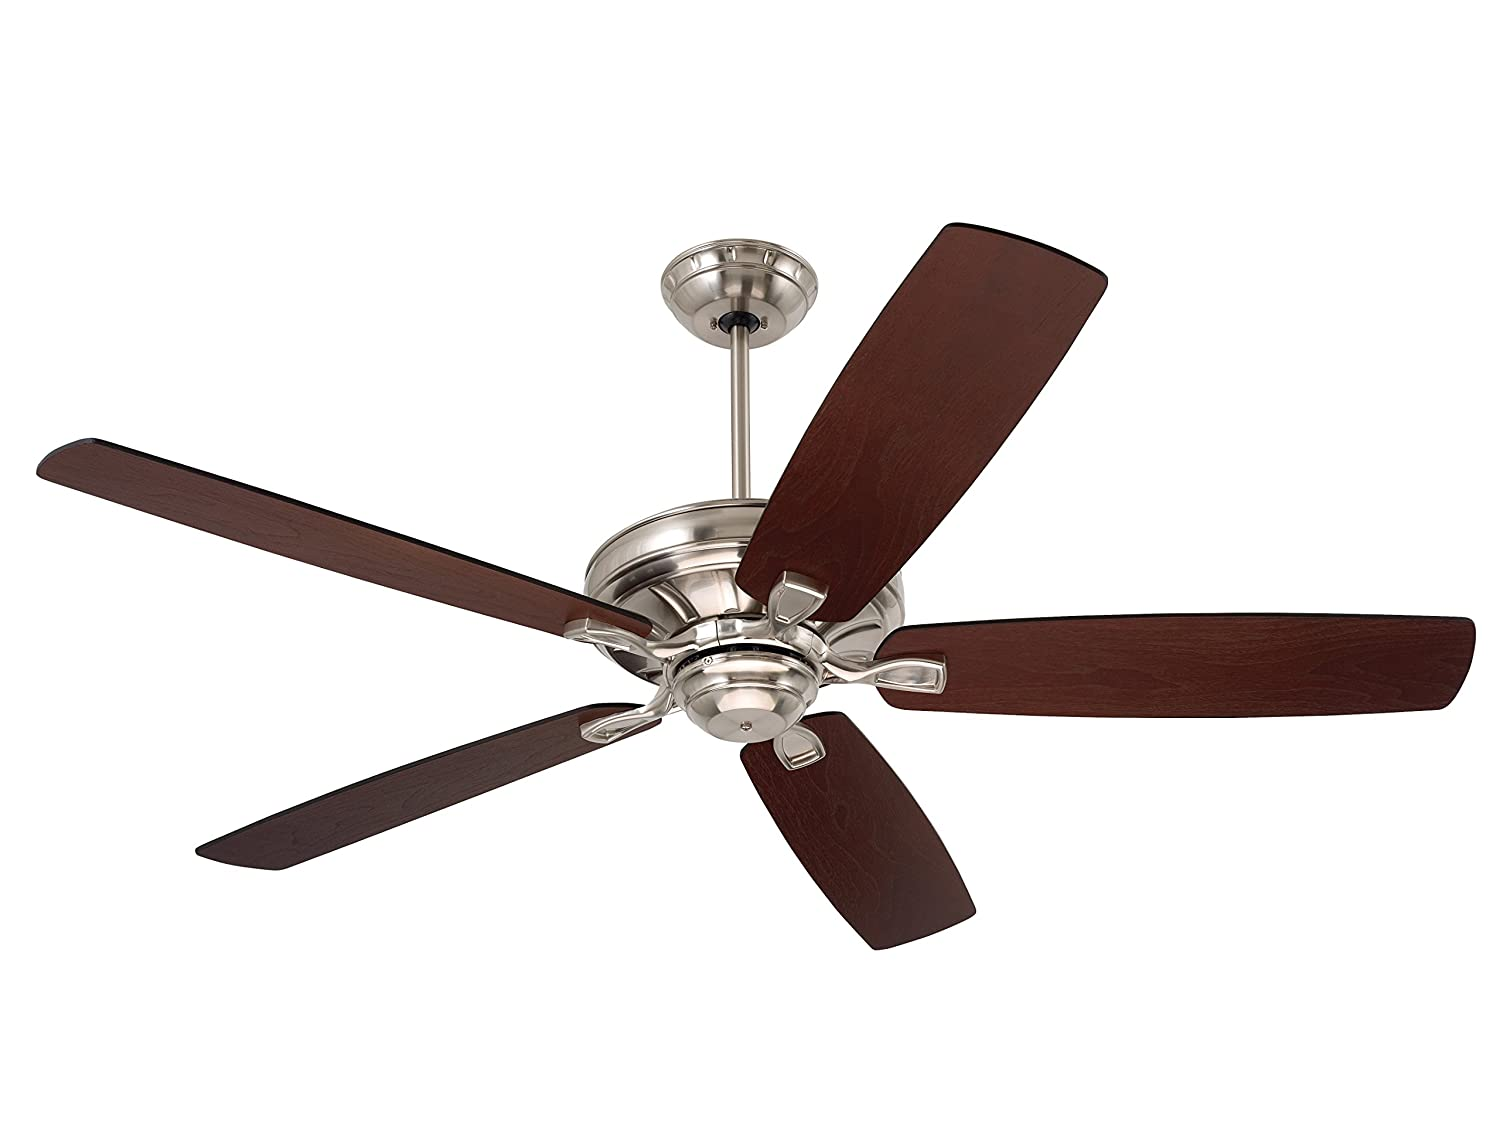 Emerson Ceiling Fans CF784BS Carrera, 60-Inch Indoor Ceiling Fan ...